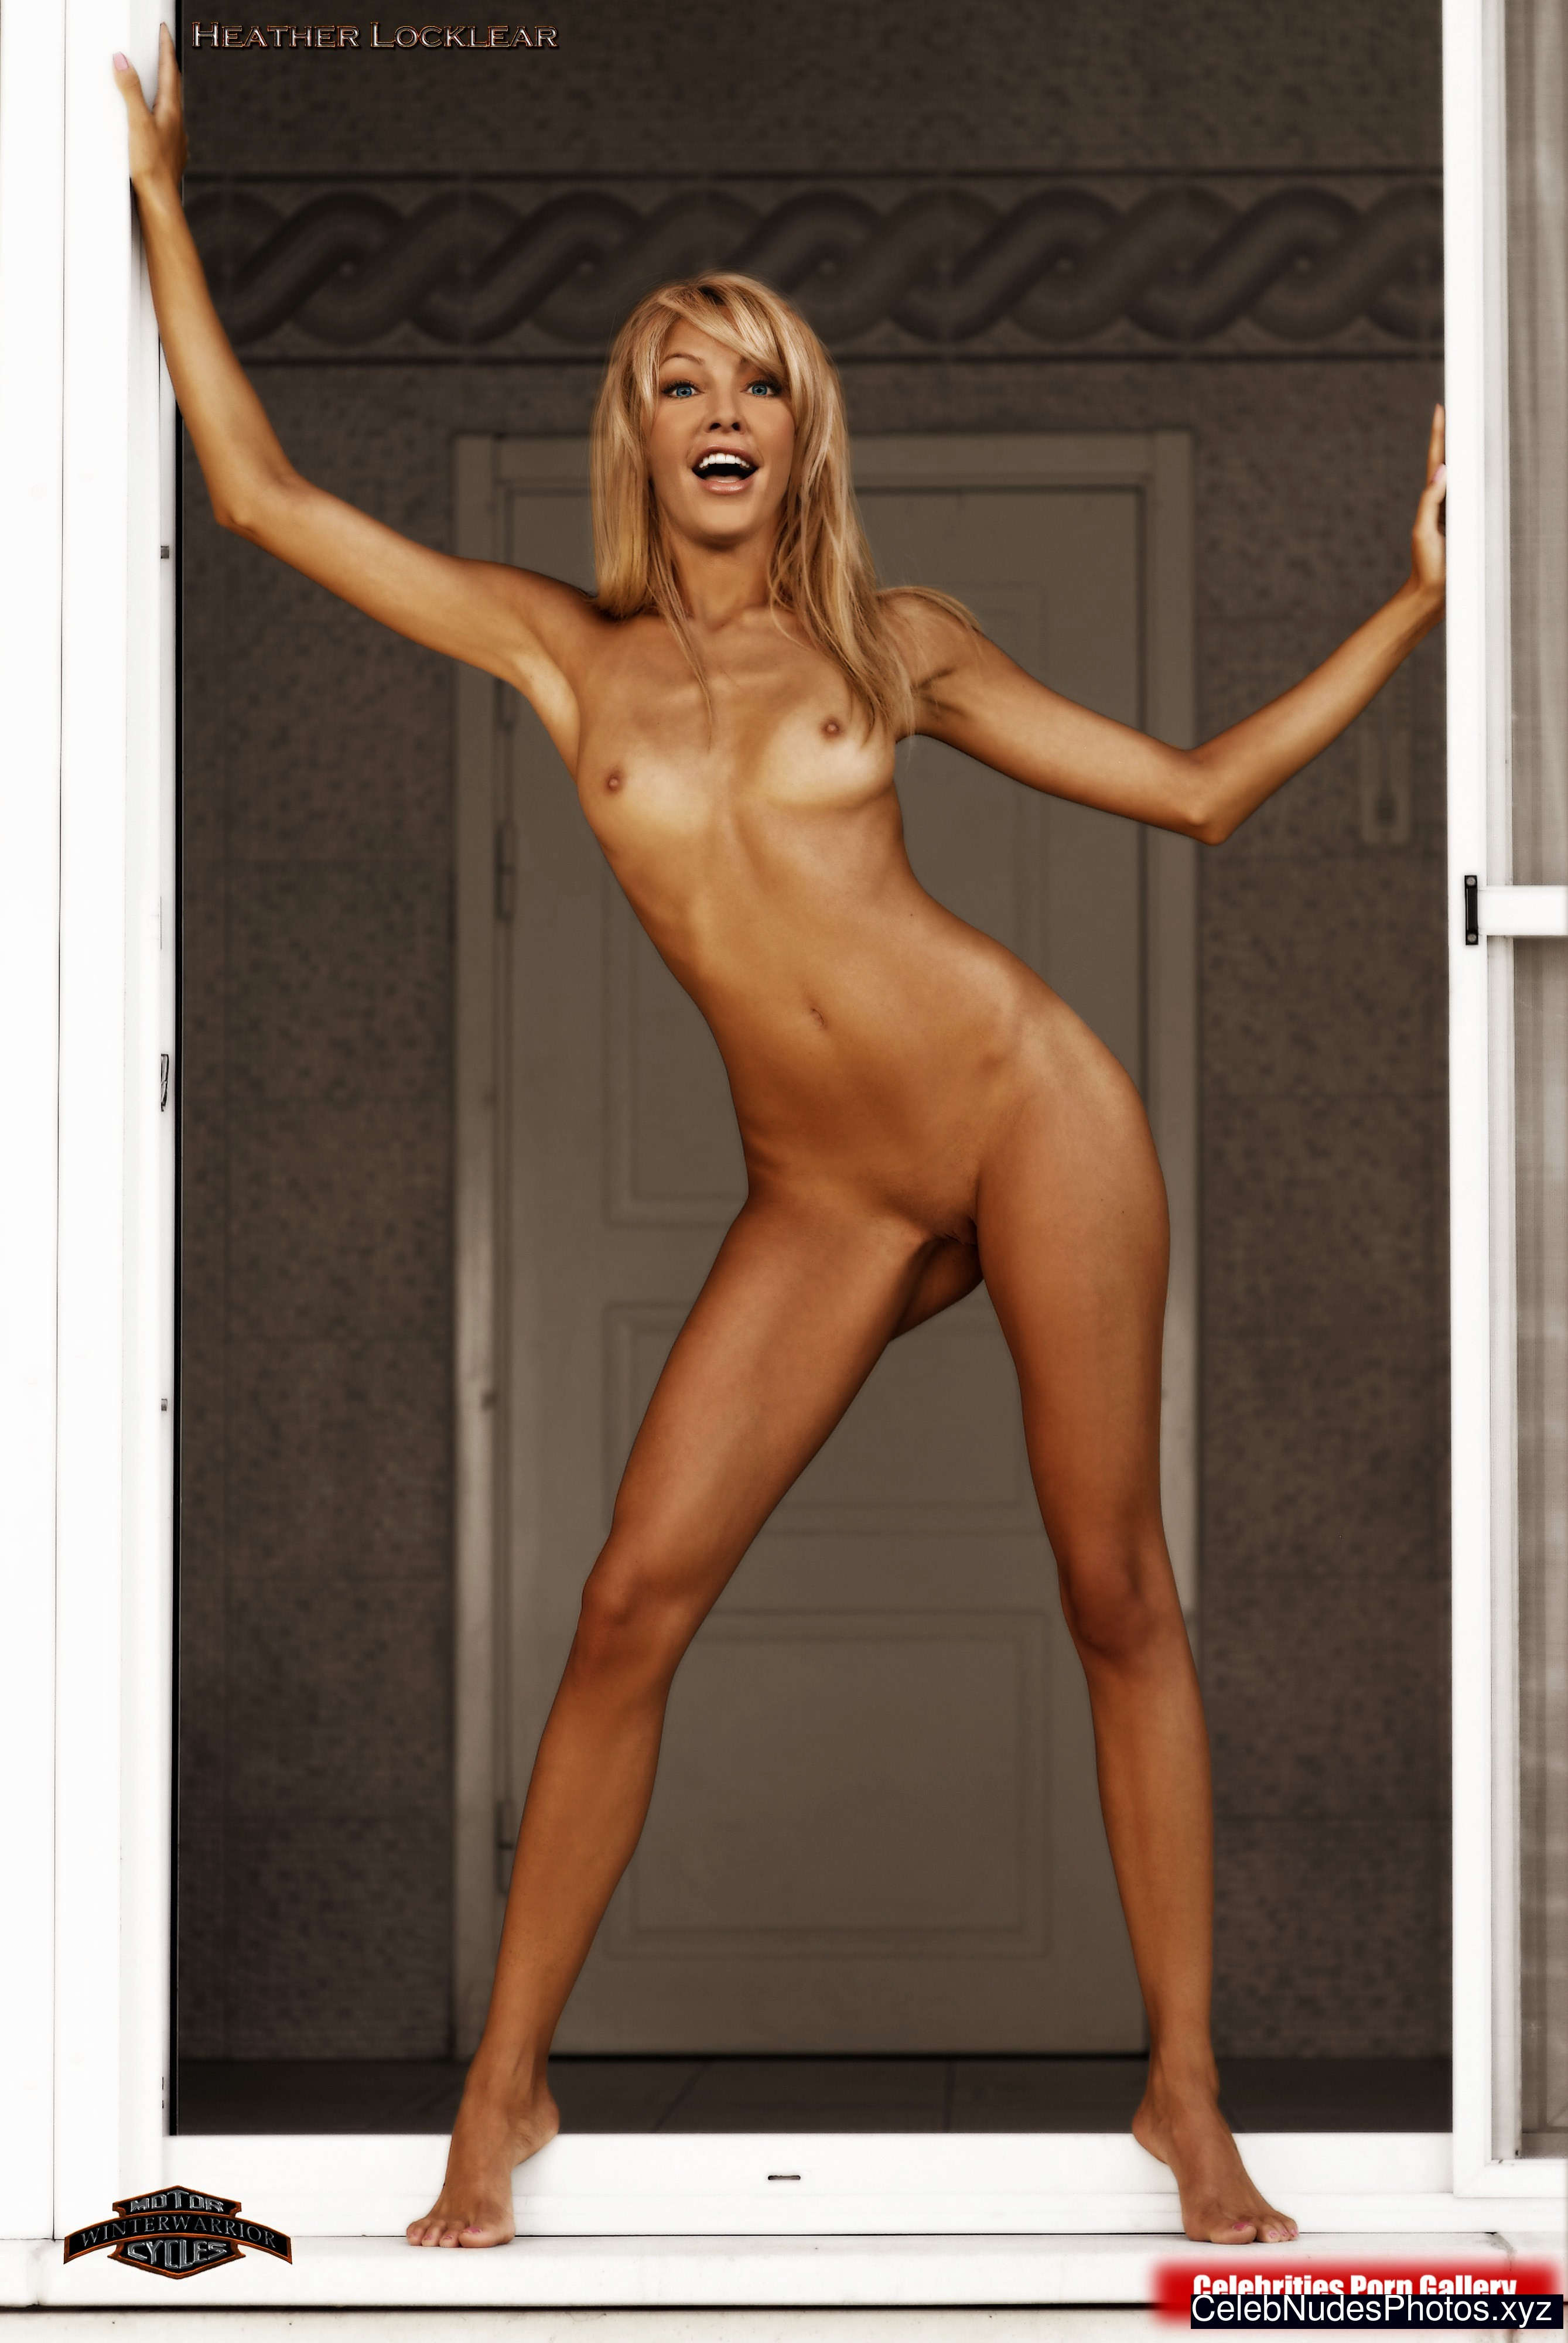 pictures nude of heather locklear